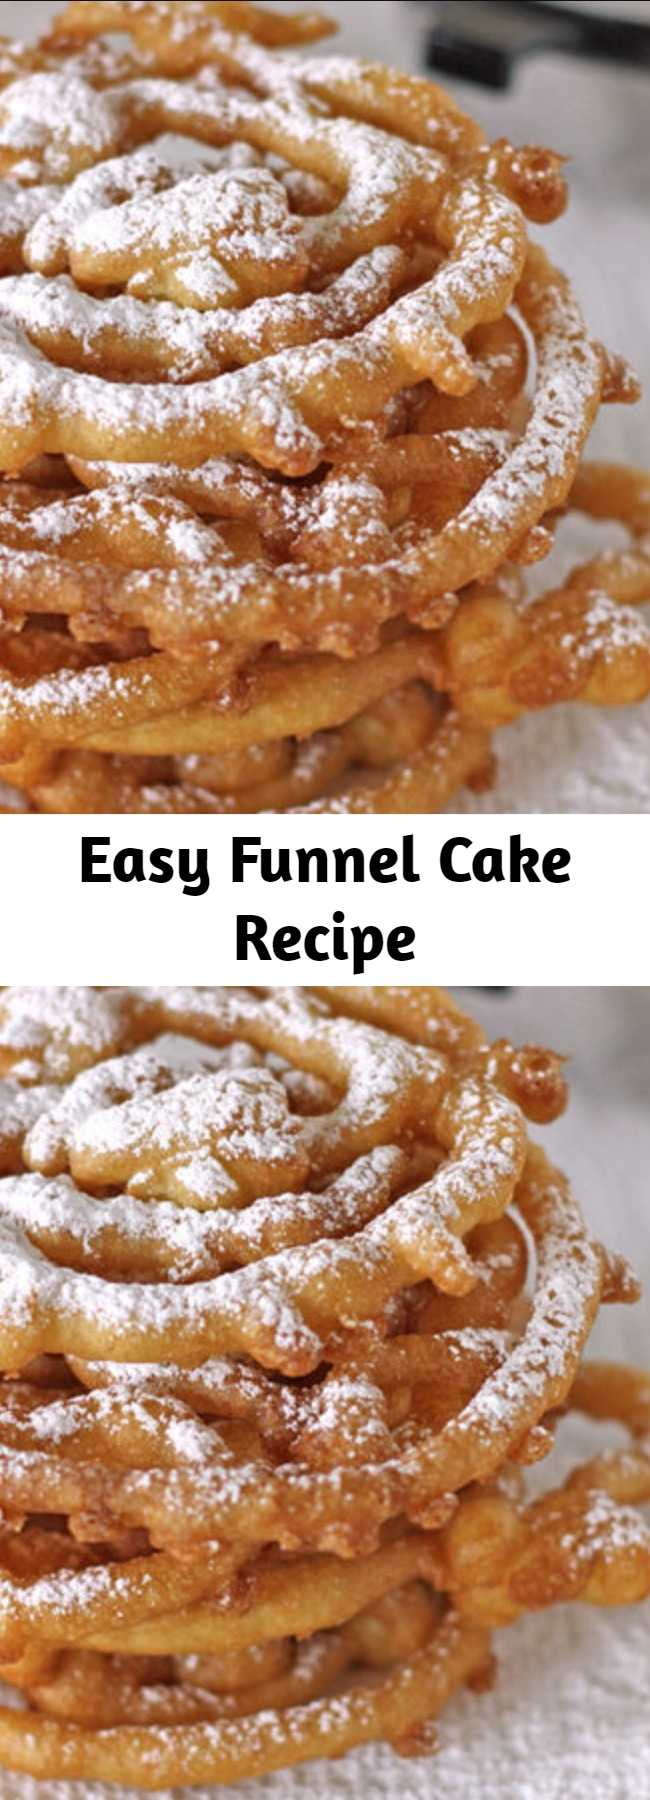 Easy Funnel Cake Recipe - Enjoy the deep-fried funnel cake awesomeness of the state fair all year round with this DIY recipe.